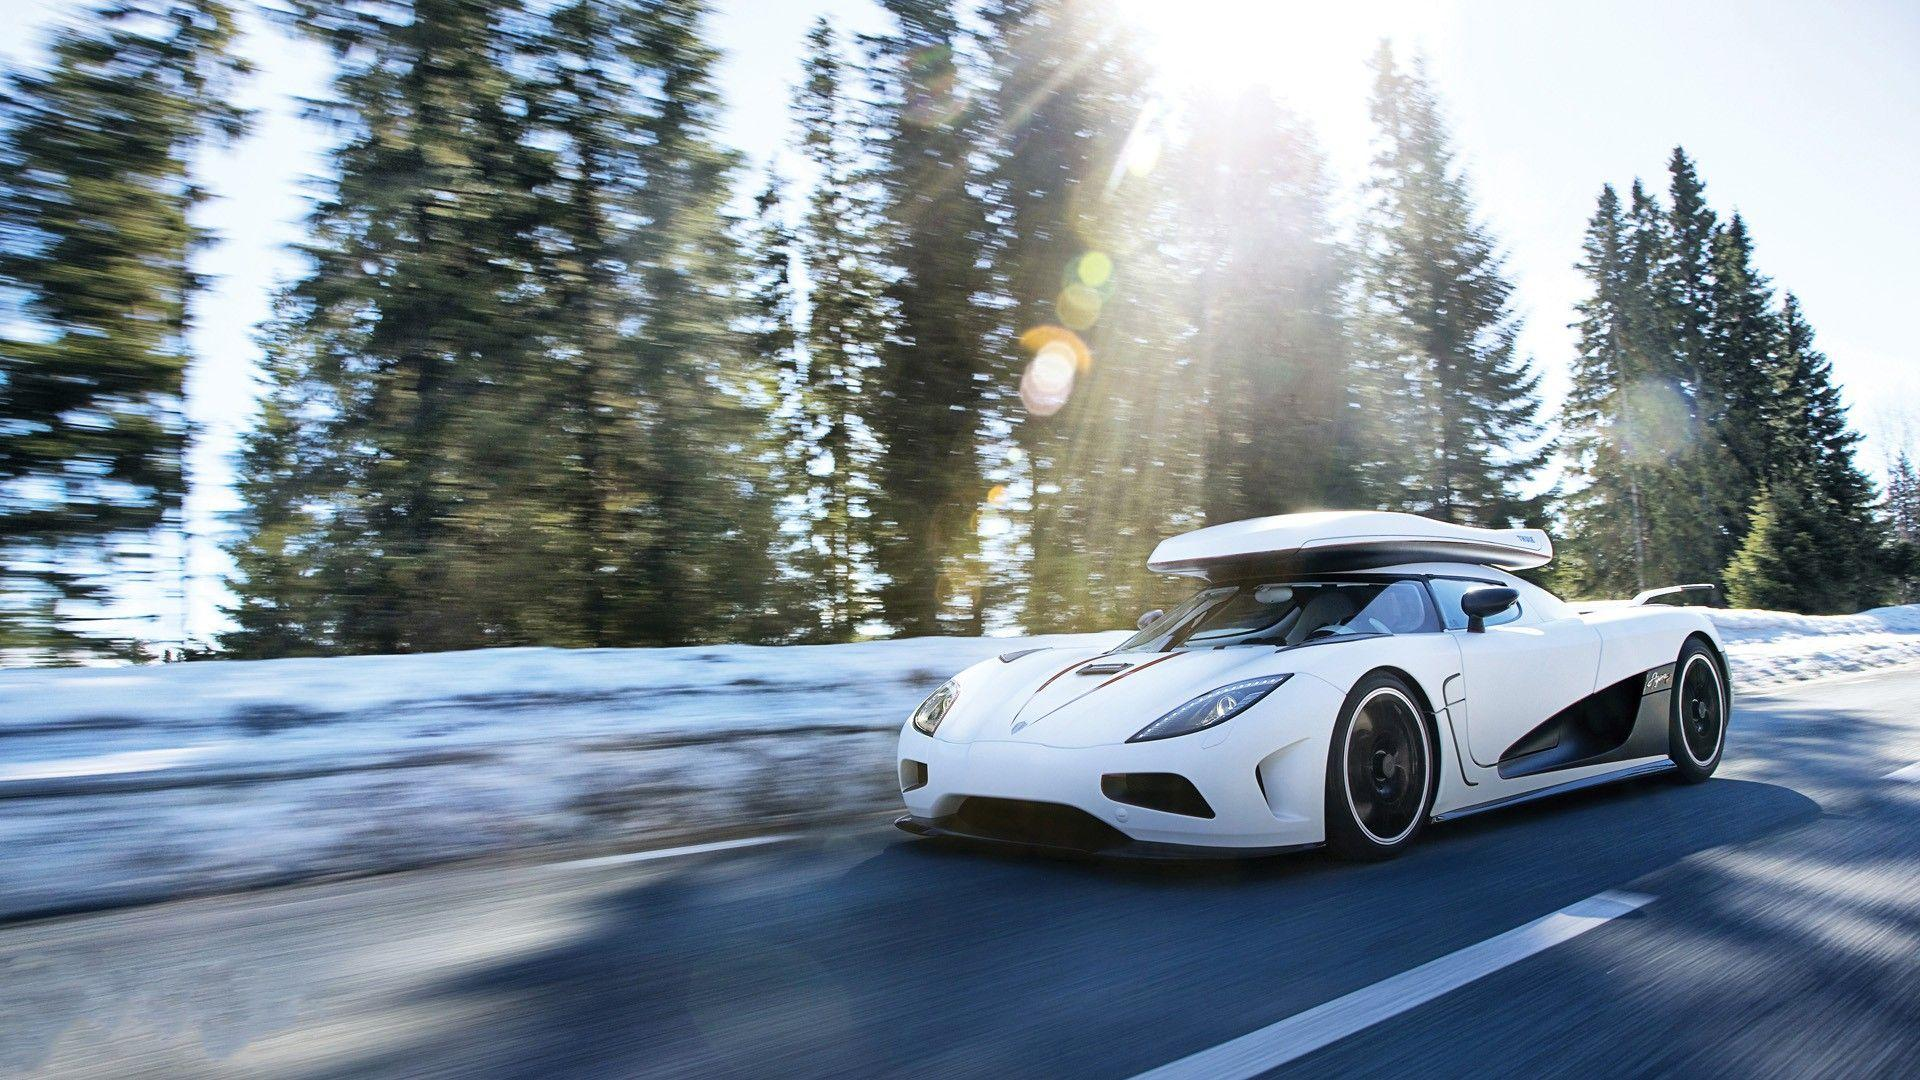 Koenigsegg Agera R Car, HD Cars, 4k Wallpapers, Image, Backgrounds